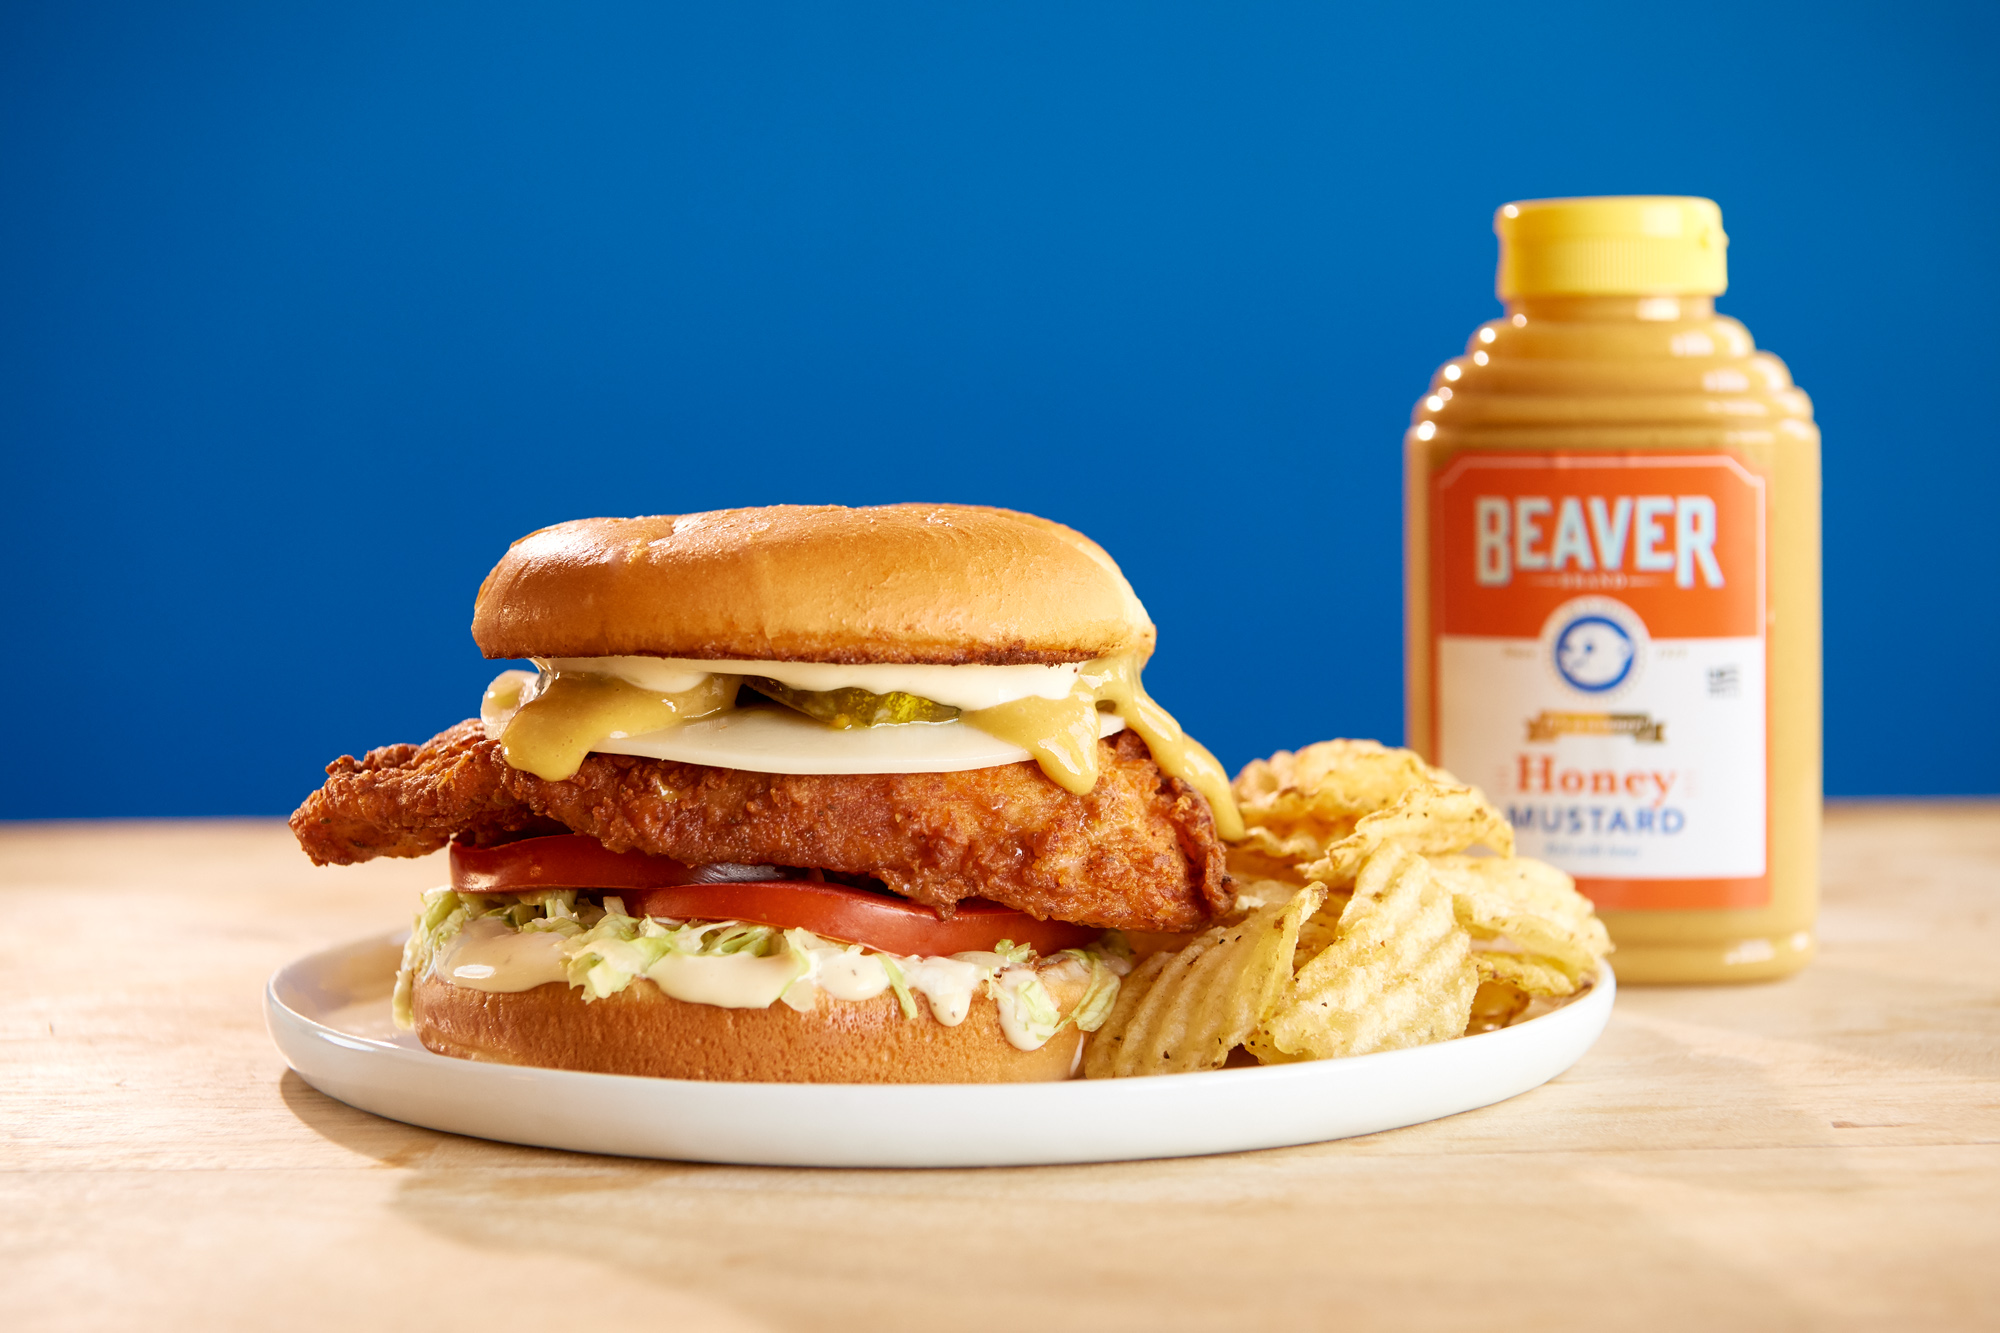 Fried chicken sandwich with Beaver Brand Honey Mustard